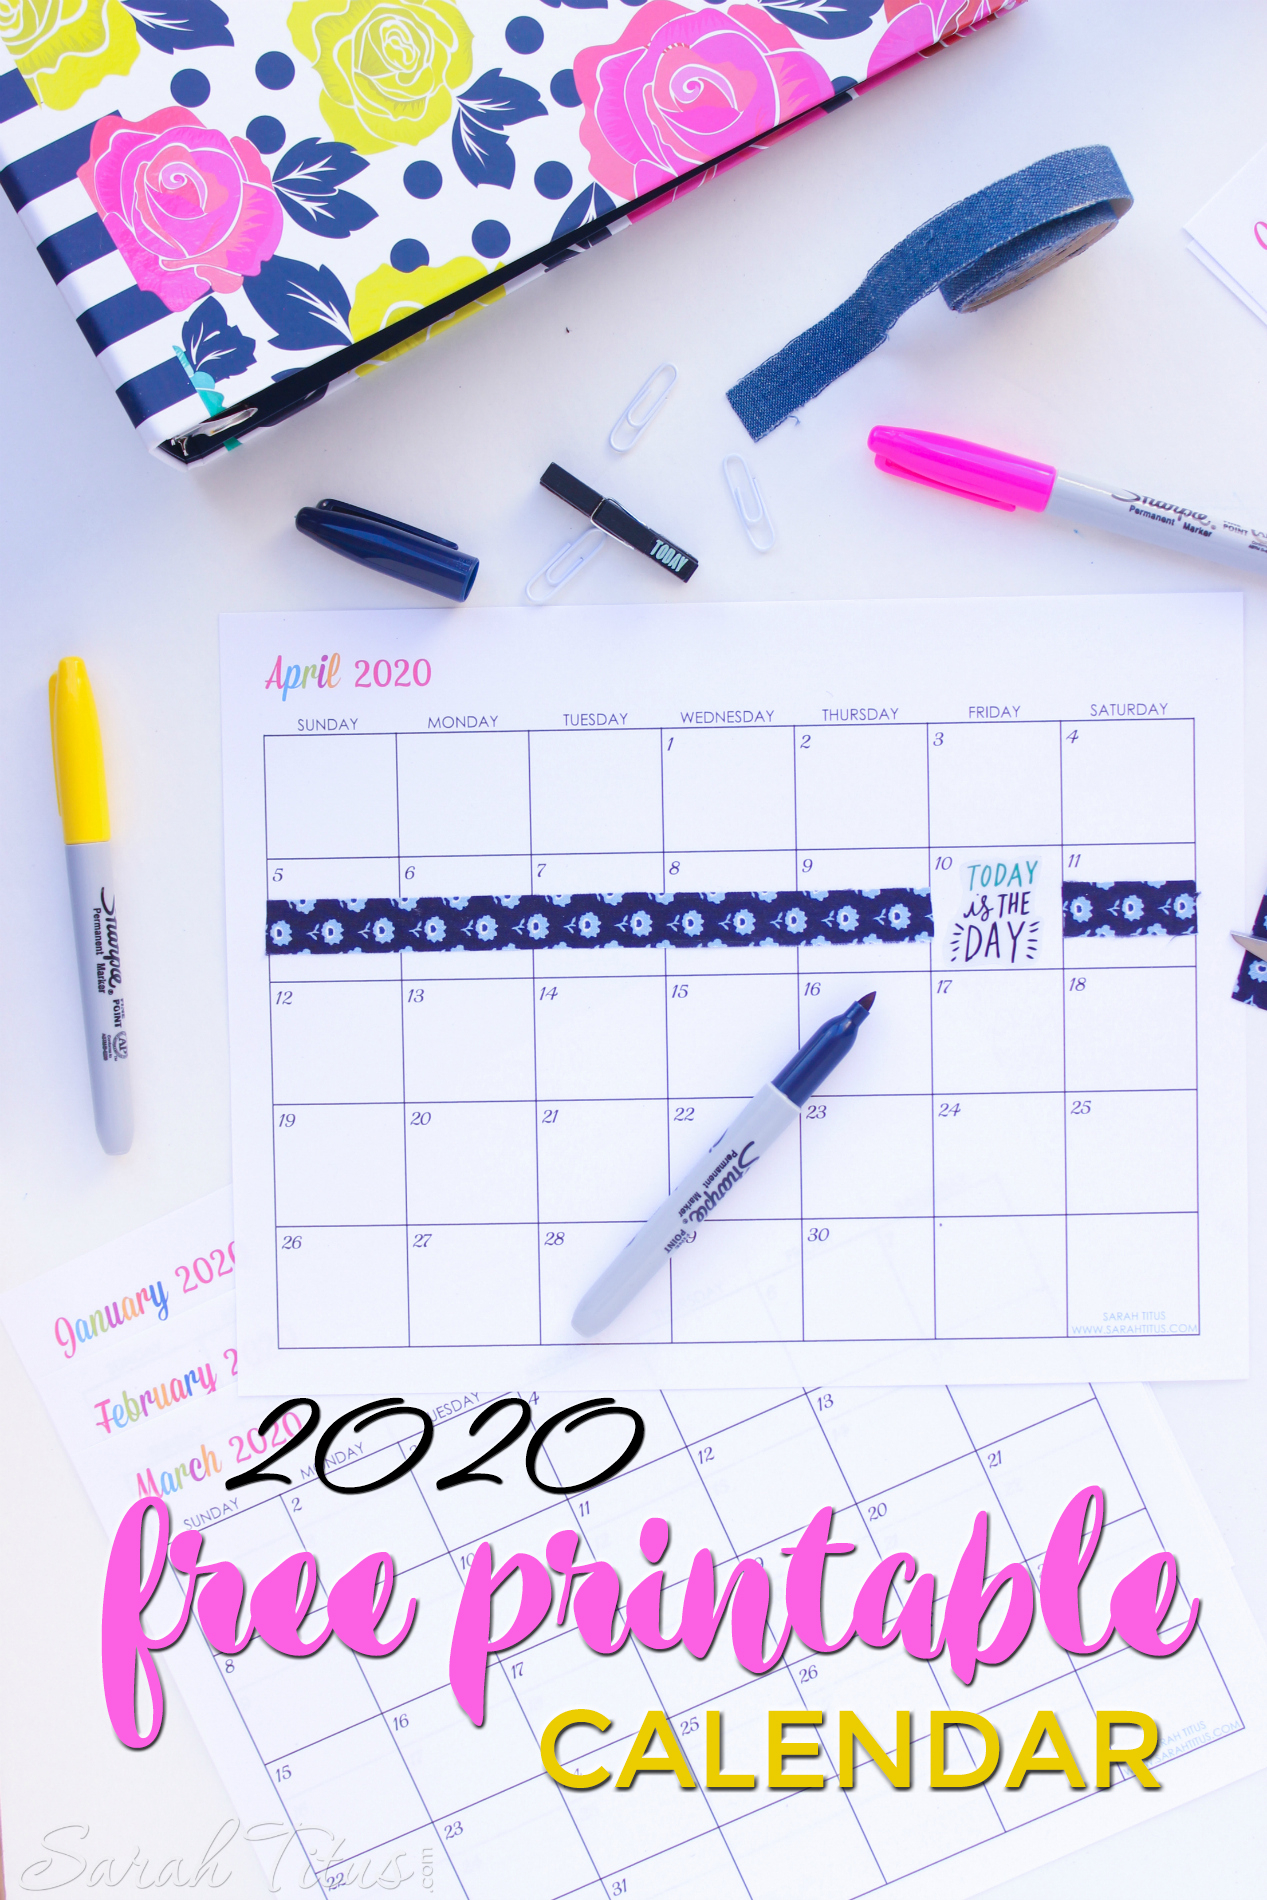 Custom Editable 2020 Free Printable Calendars - Sarah Titus with Printable 2020 Calendar I Can Edit